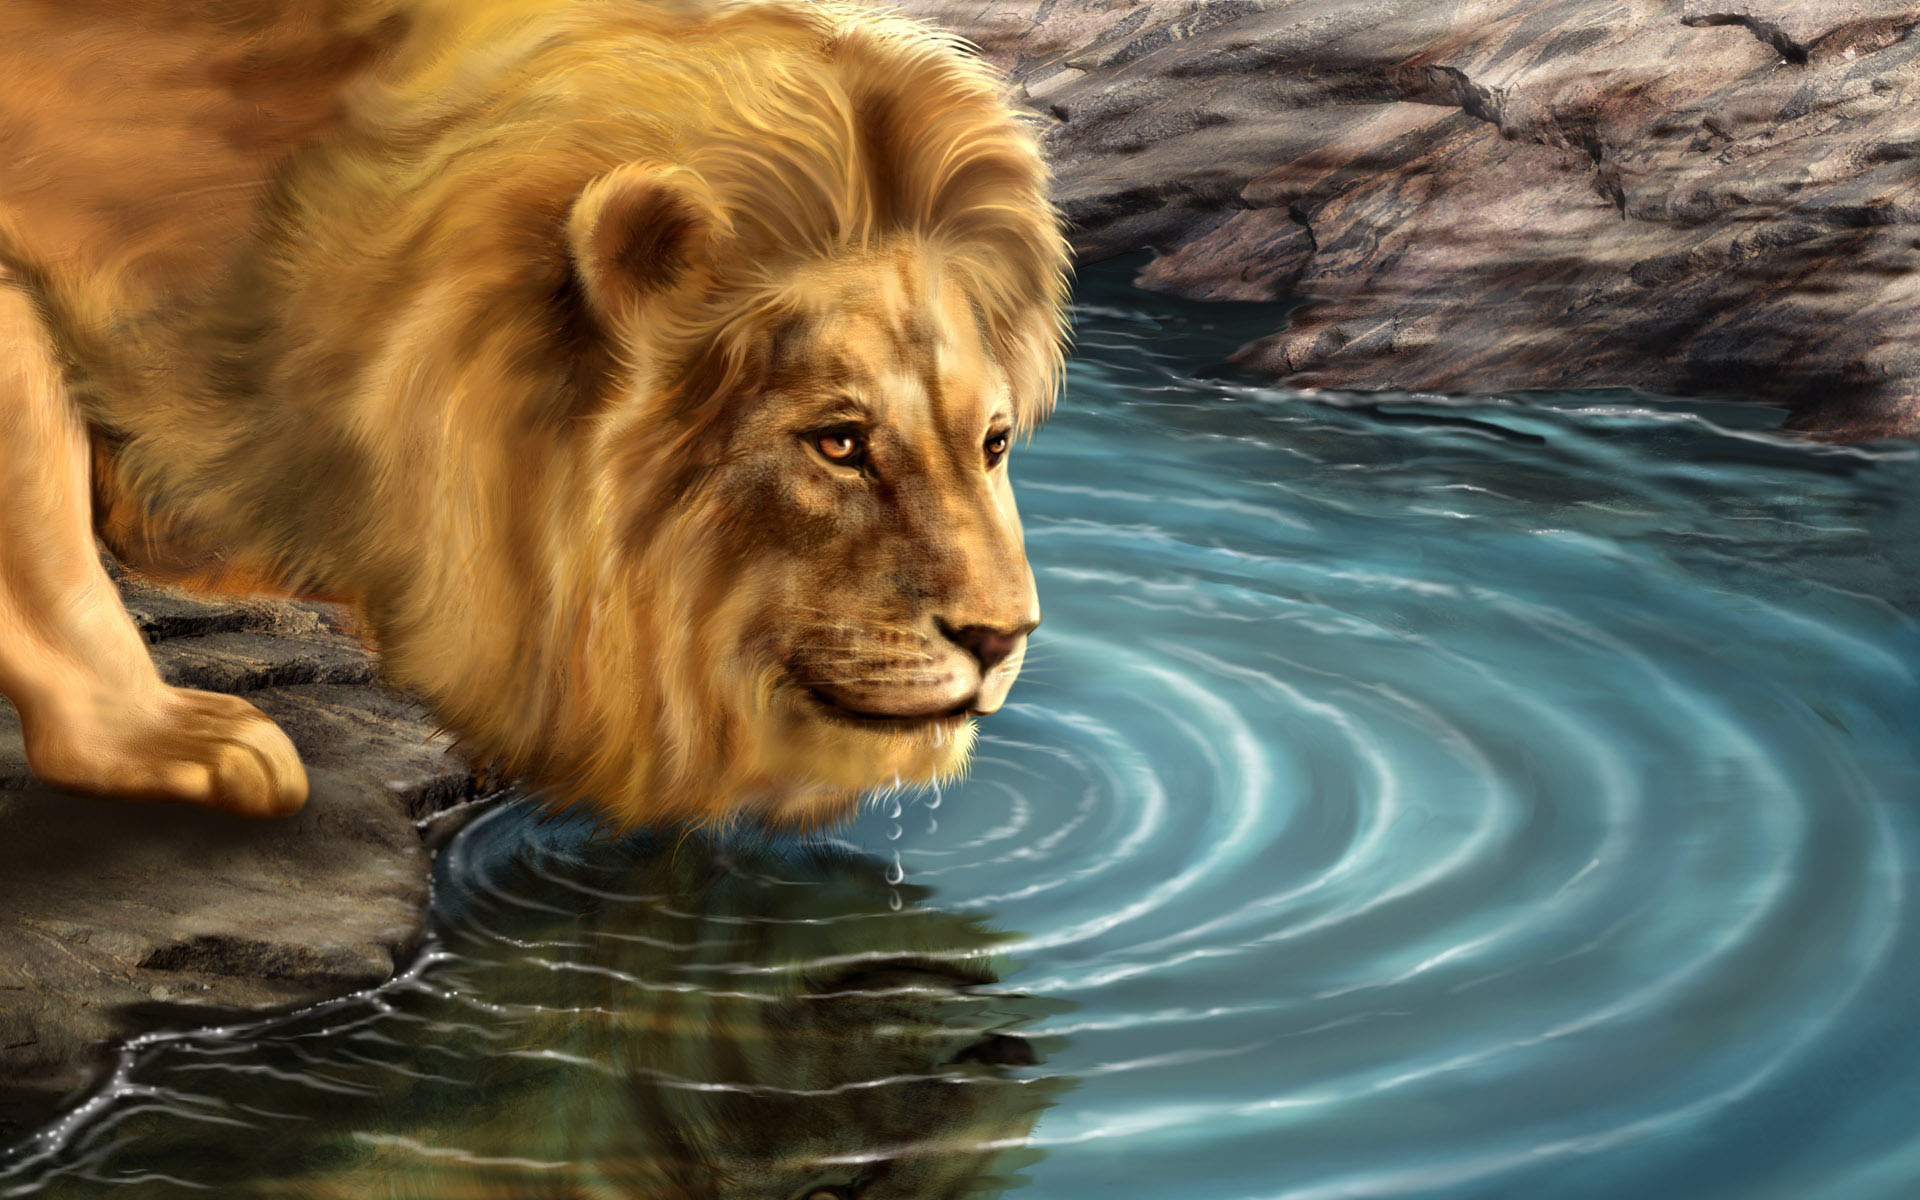 3d Live Wallpaper Pro Apk Free Download Download Lion Animated Wallpaper Gallery